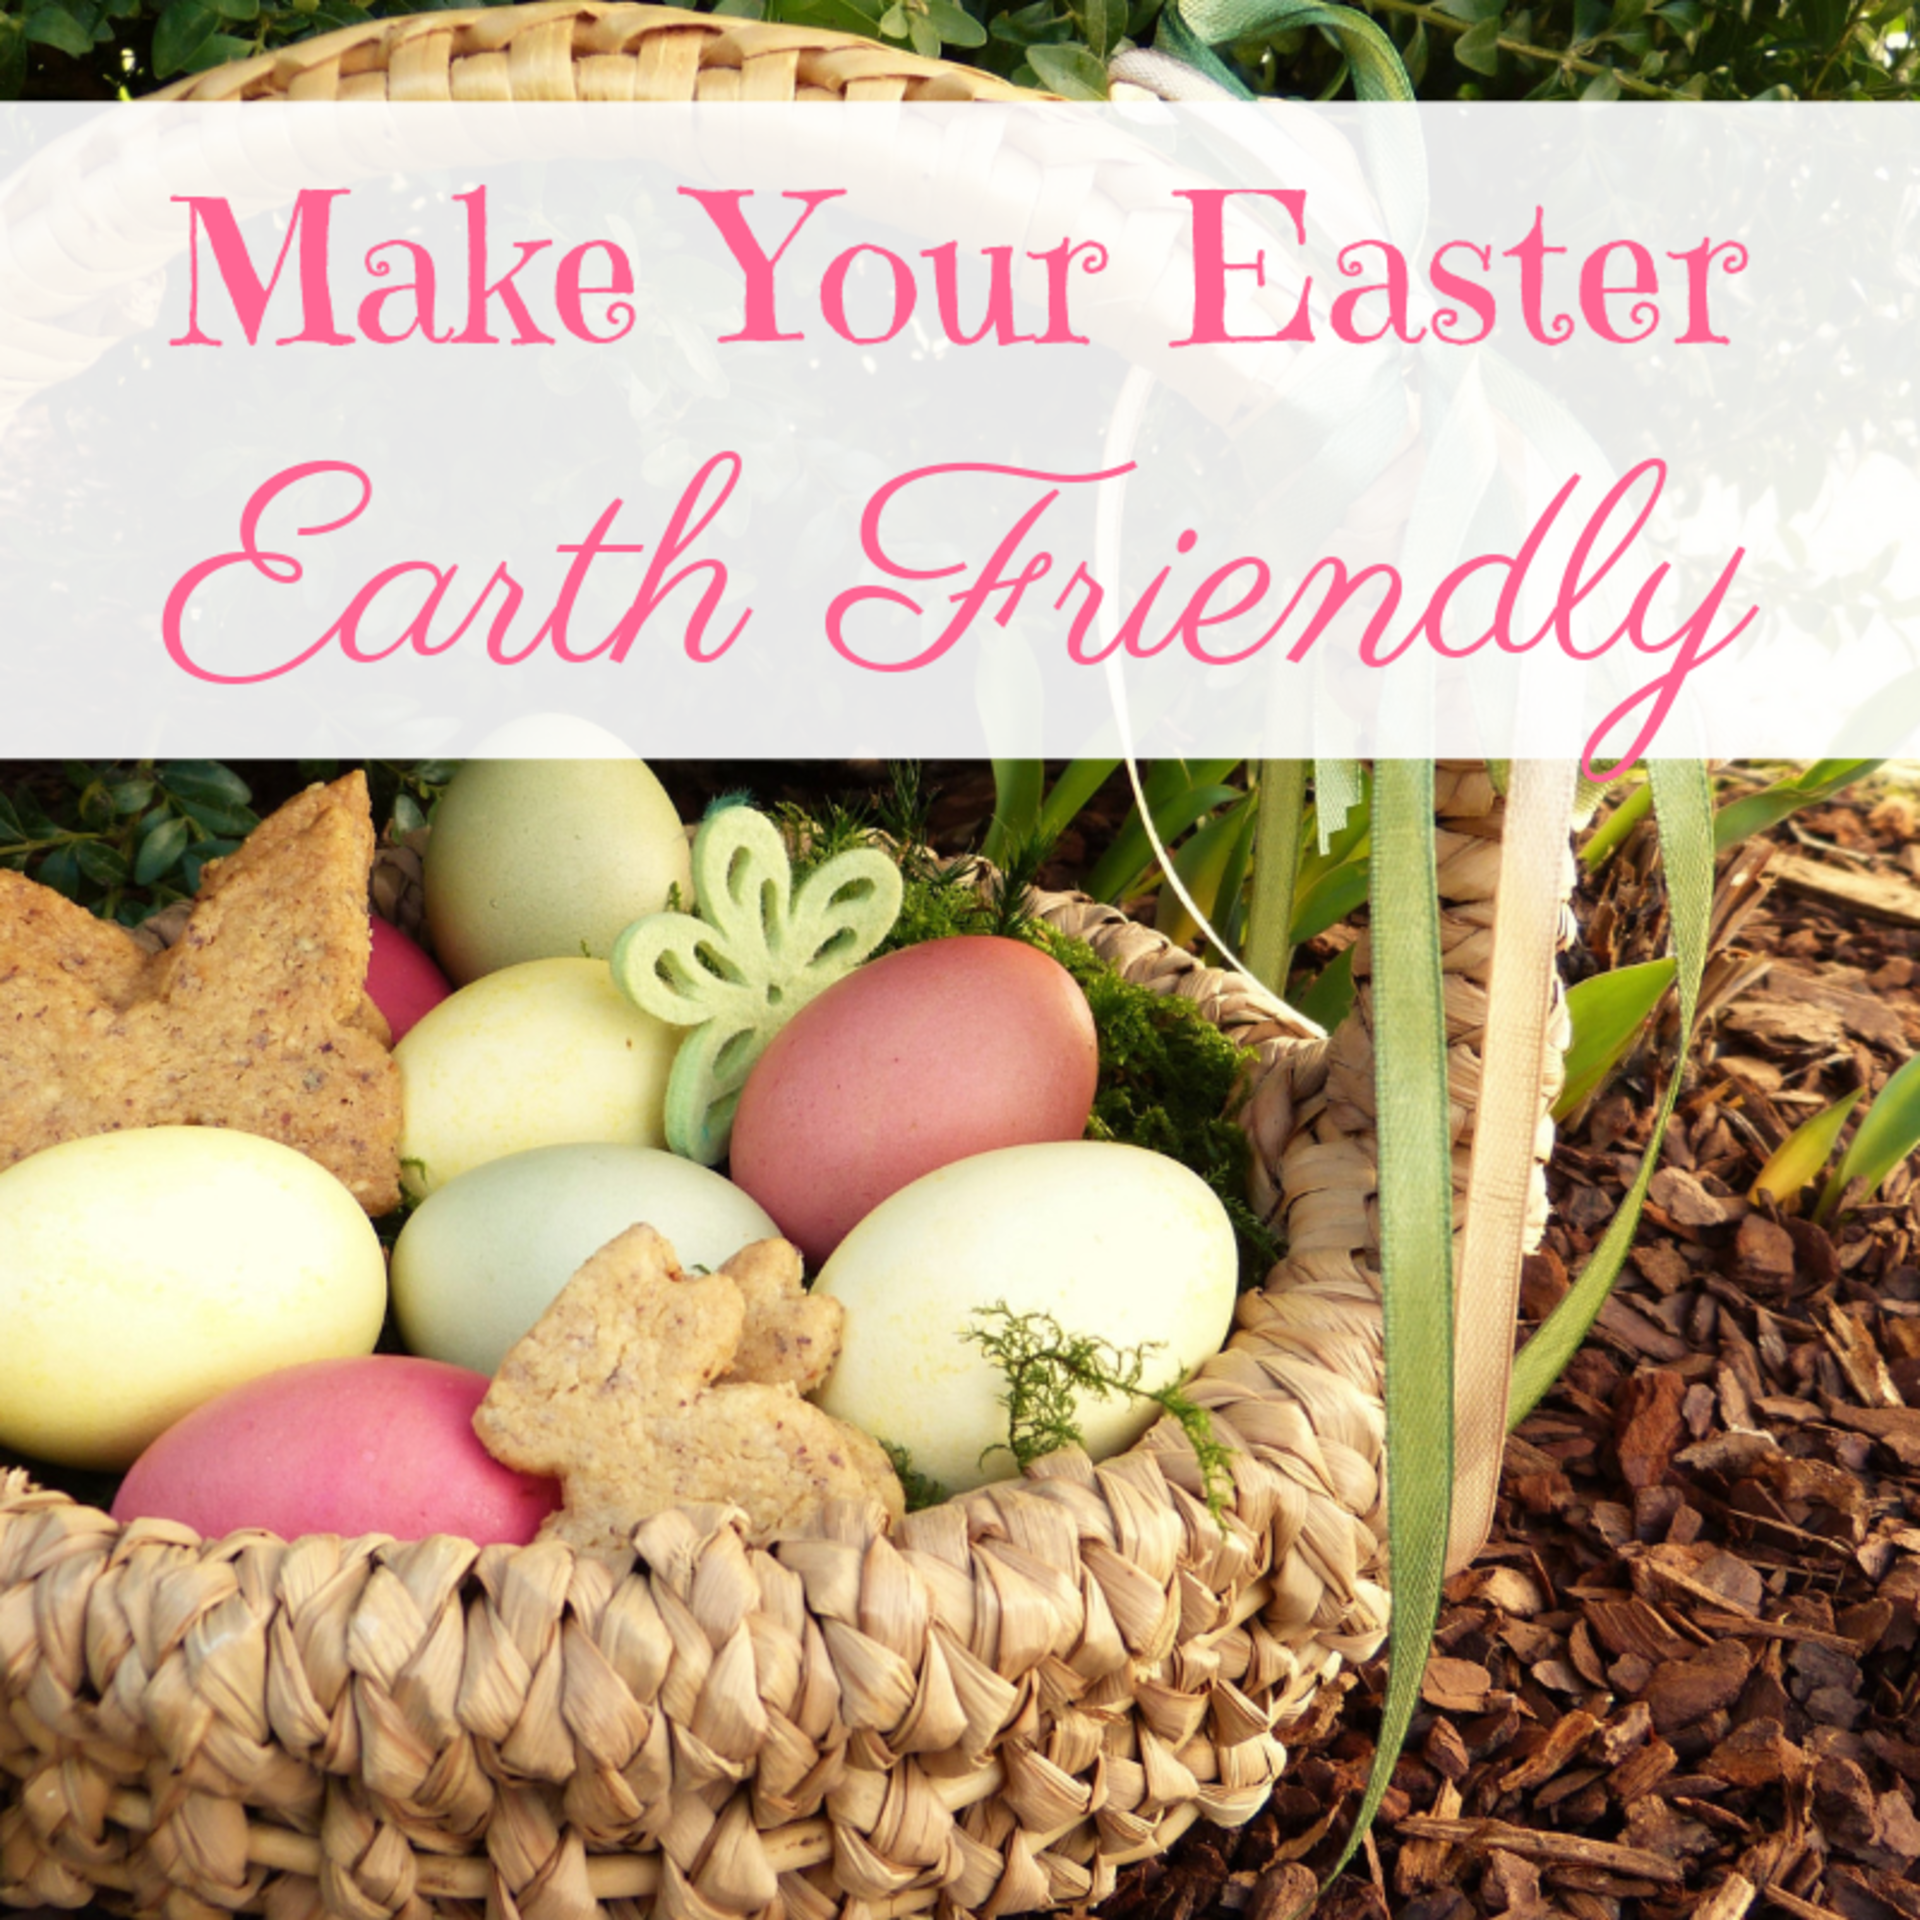 Make Your Easter Earth Friendly